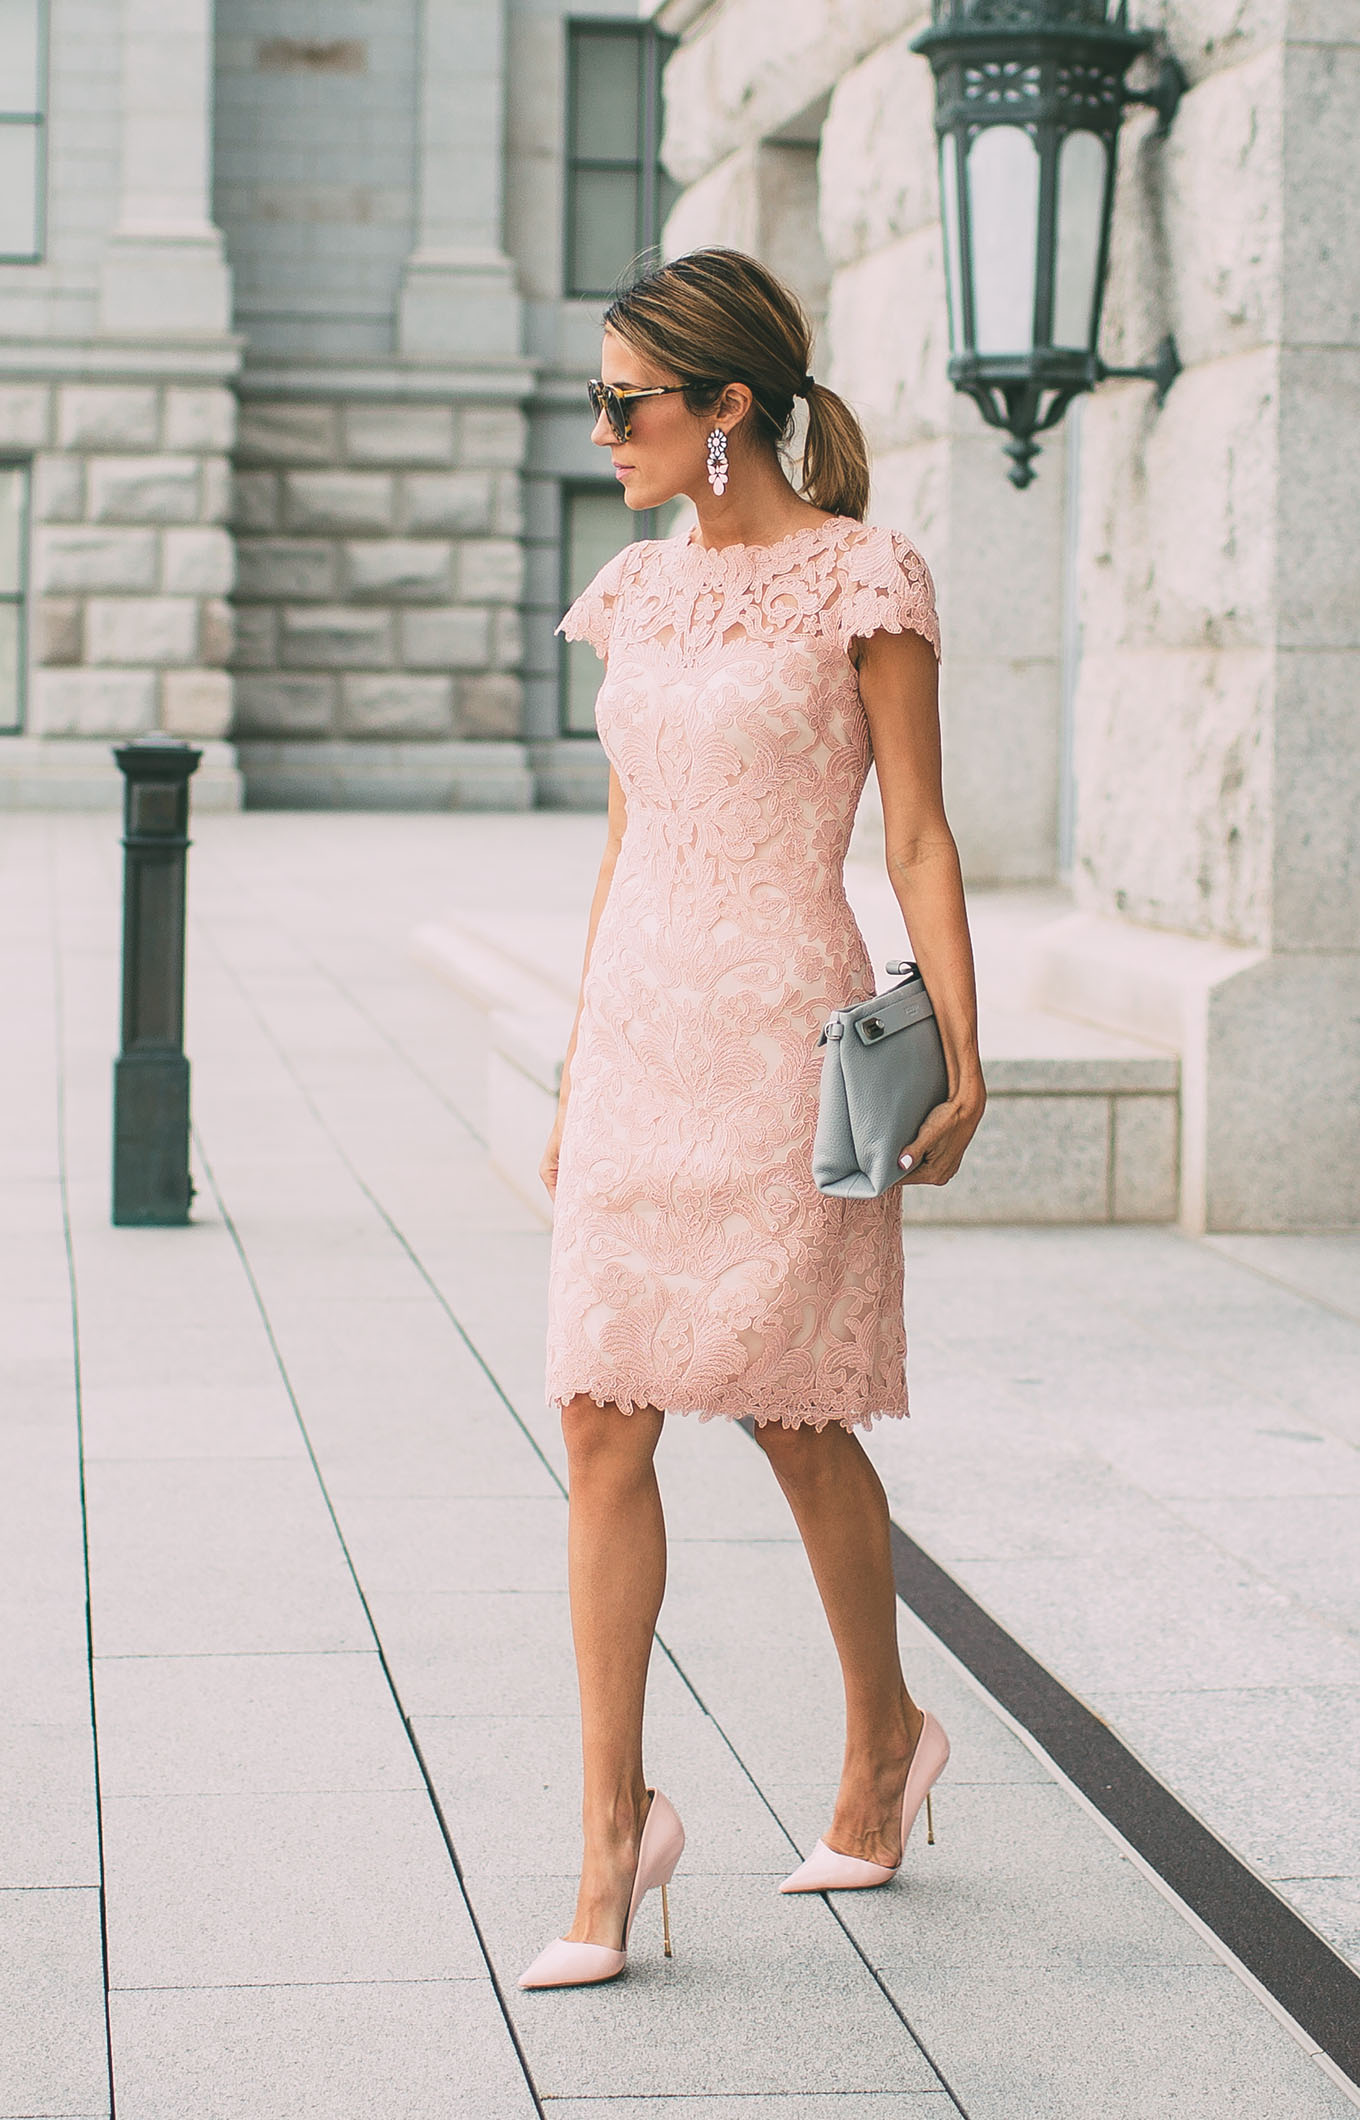 Neutral colored lace dresses